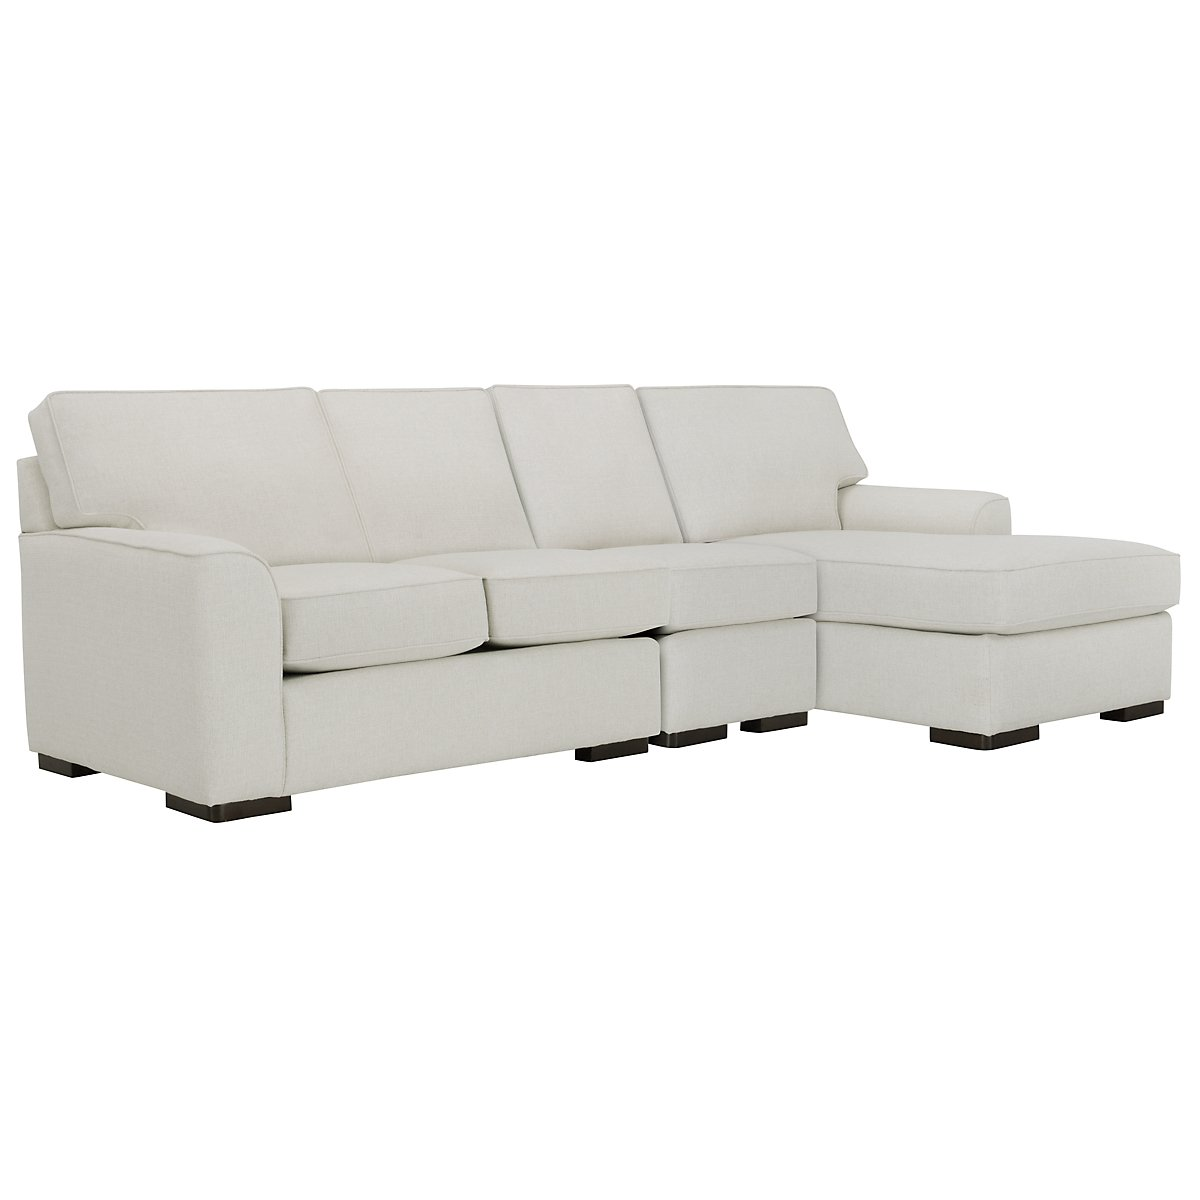 Austin White Fabric Small Right Chaise Sectional